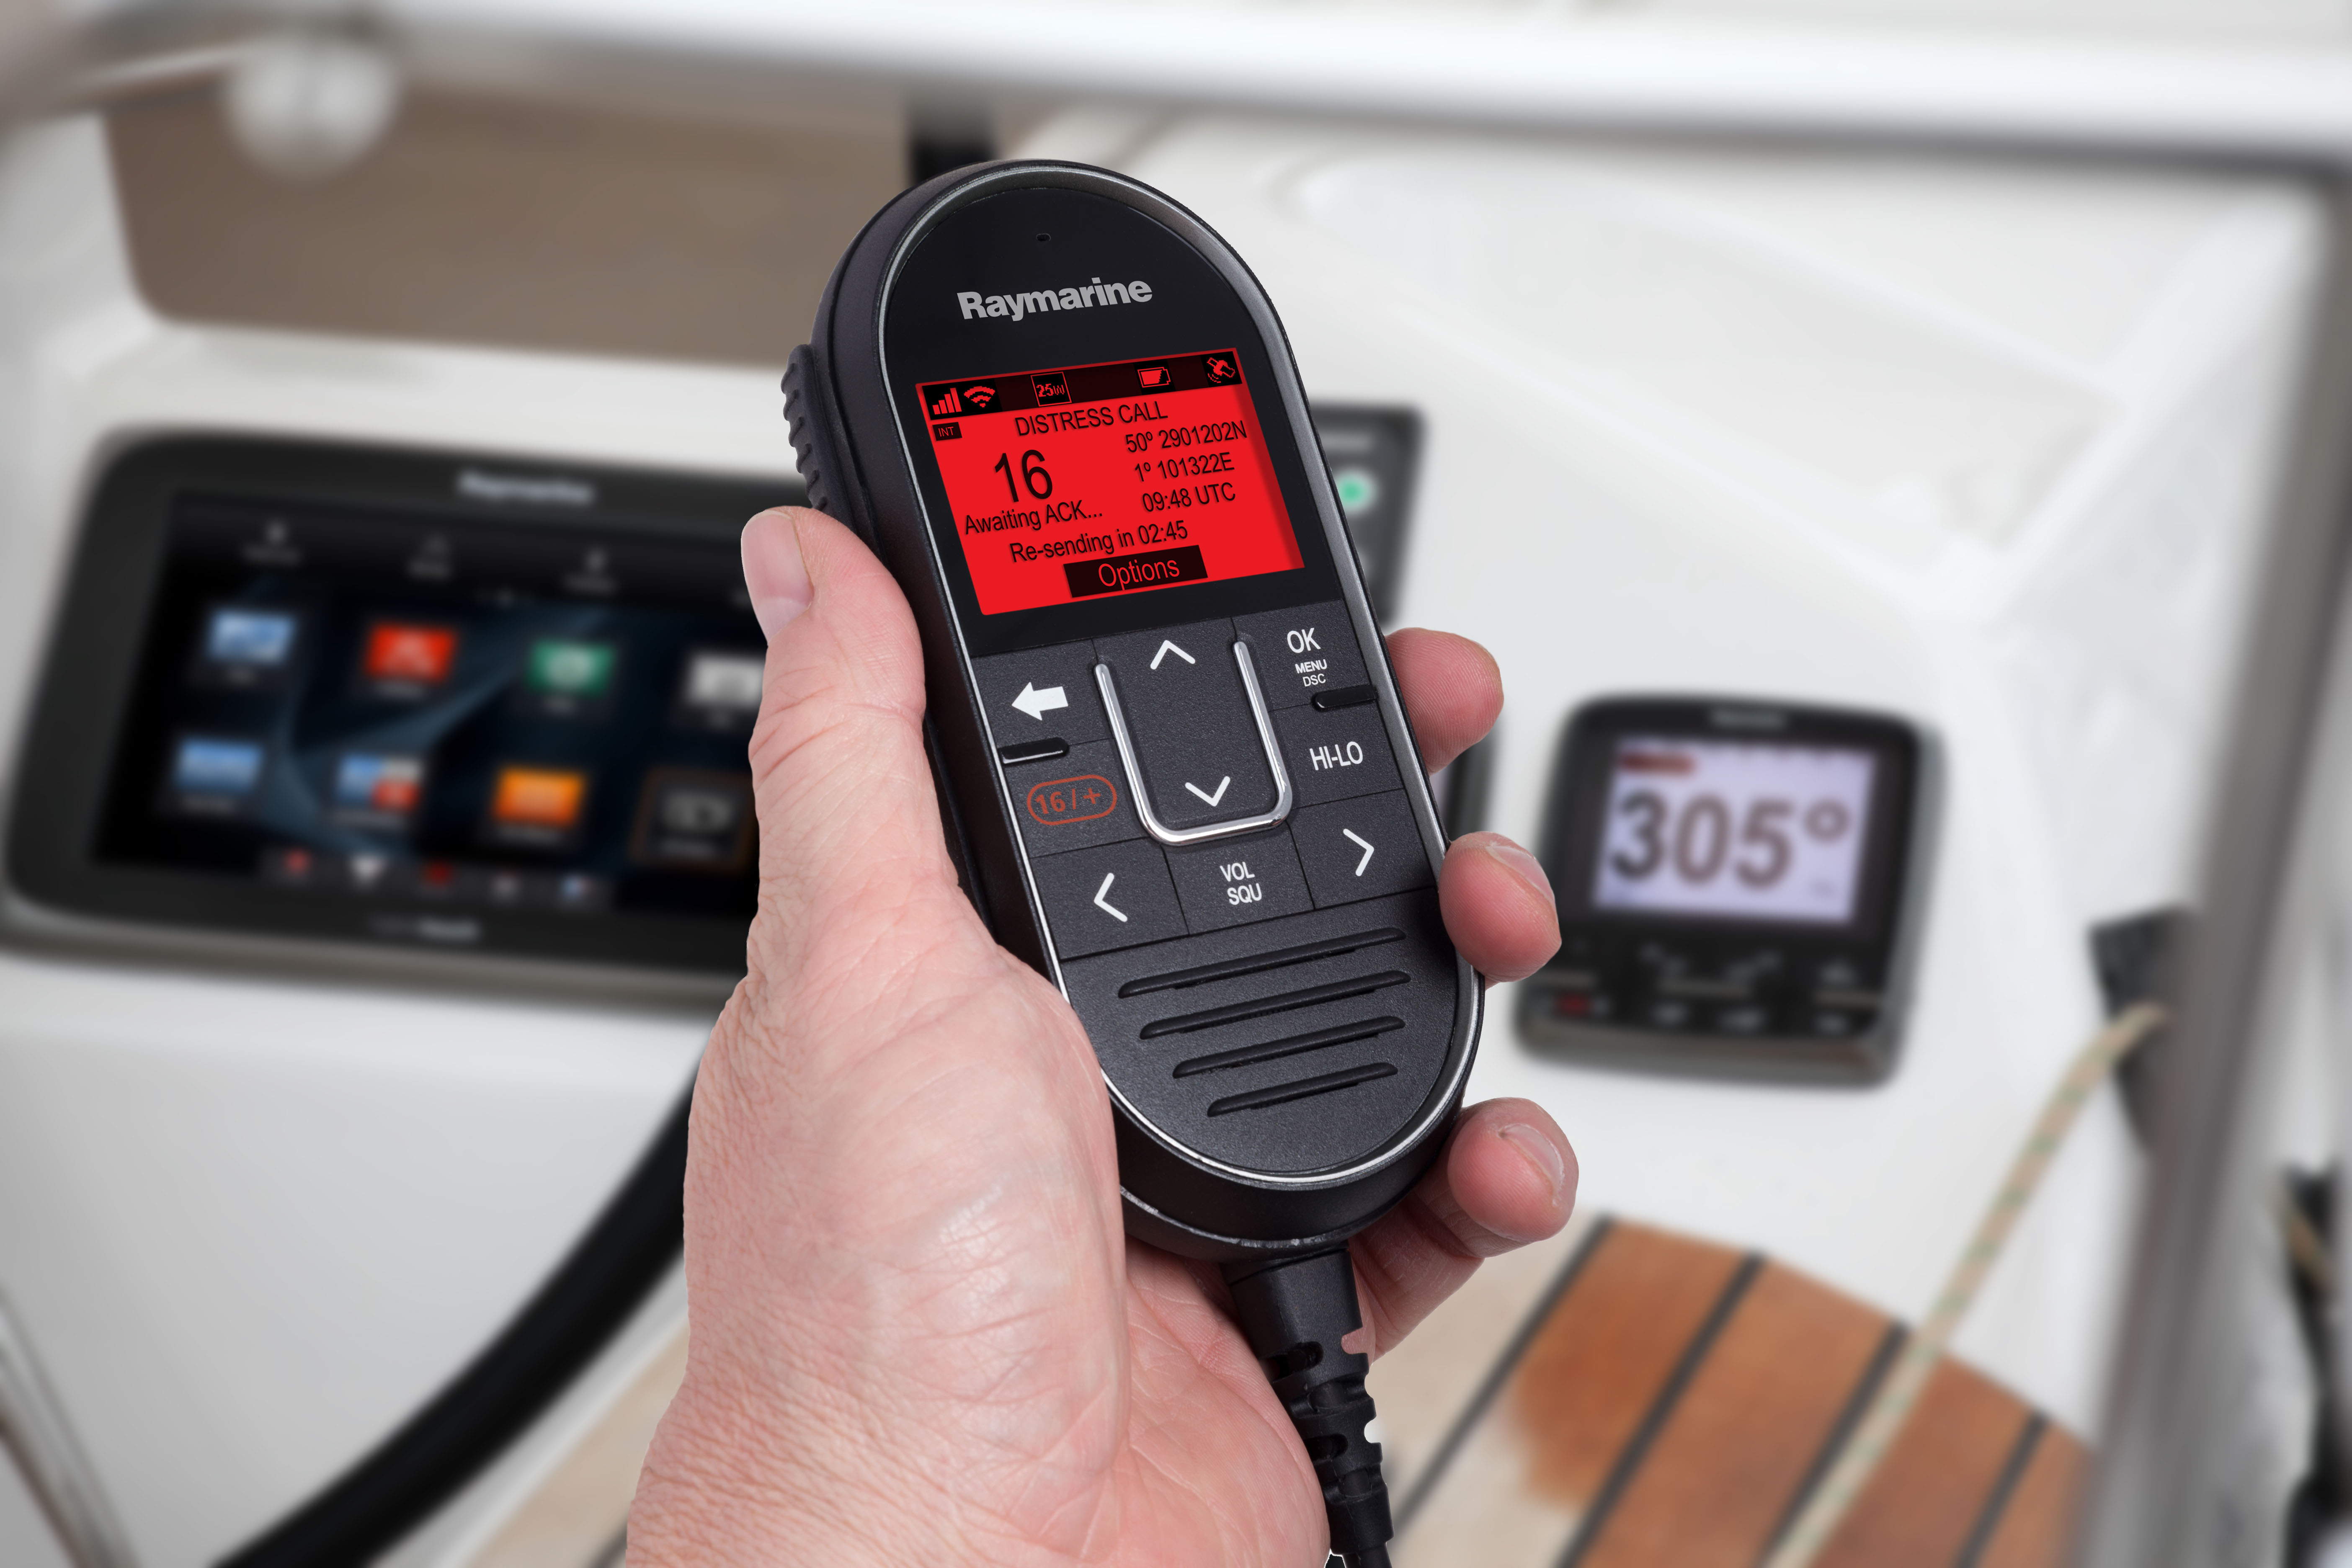 Website Cwd Raymarine Microphone Wiring Diagram Vhf Is A Full Featured Radio Designed To Withstand Lifetime Of Use In Any Weather